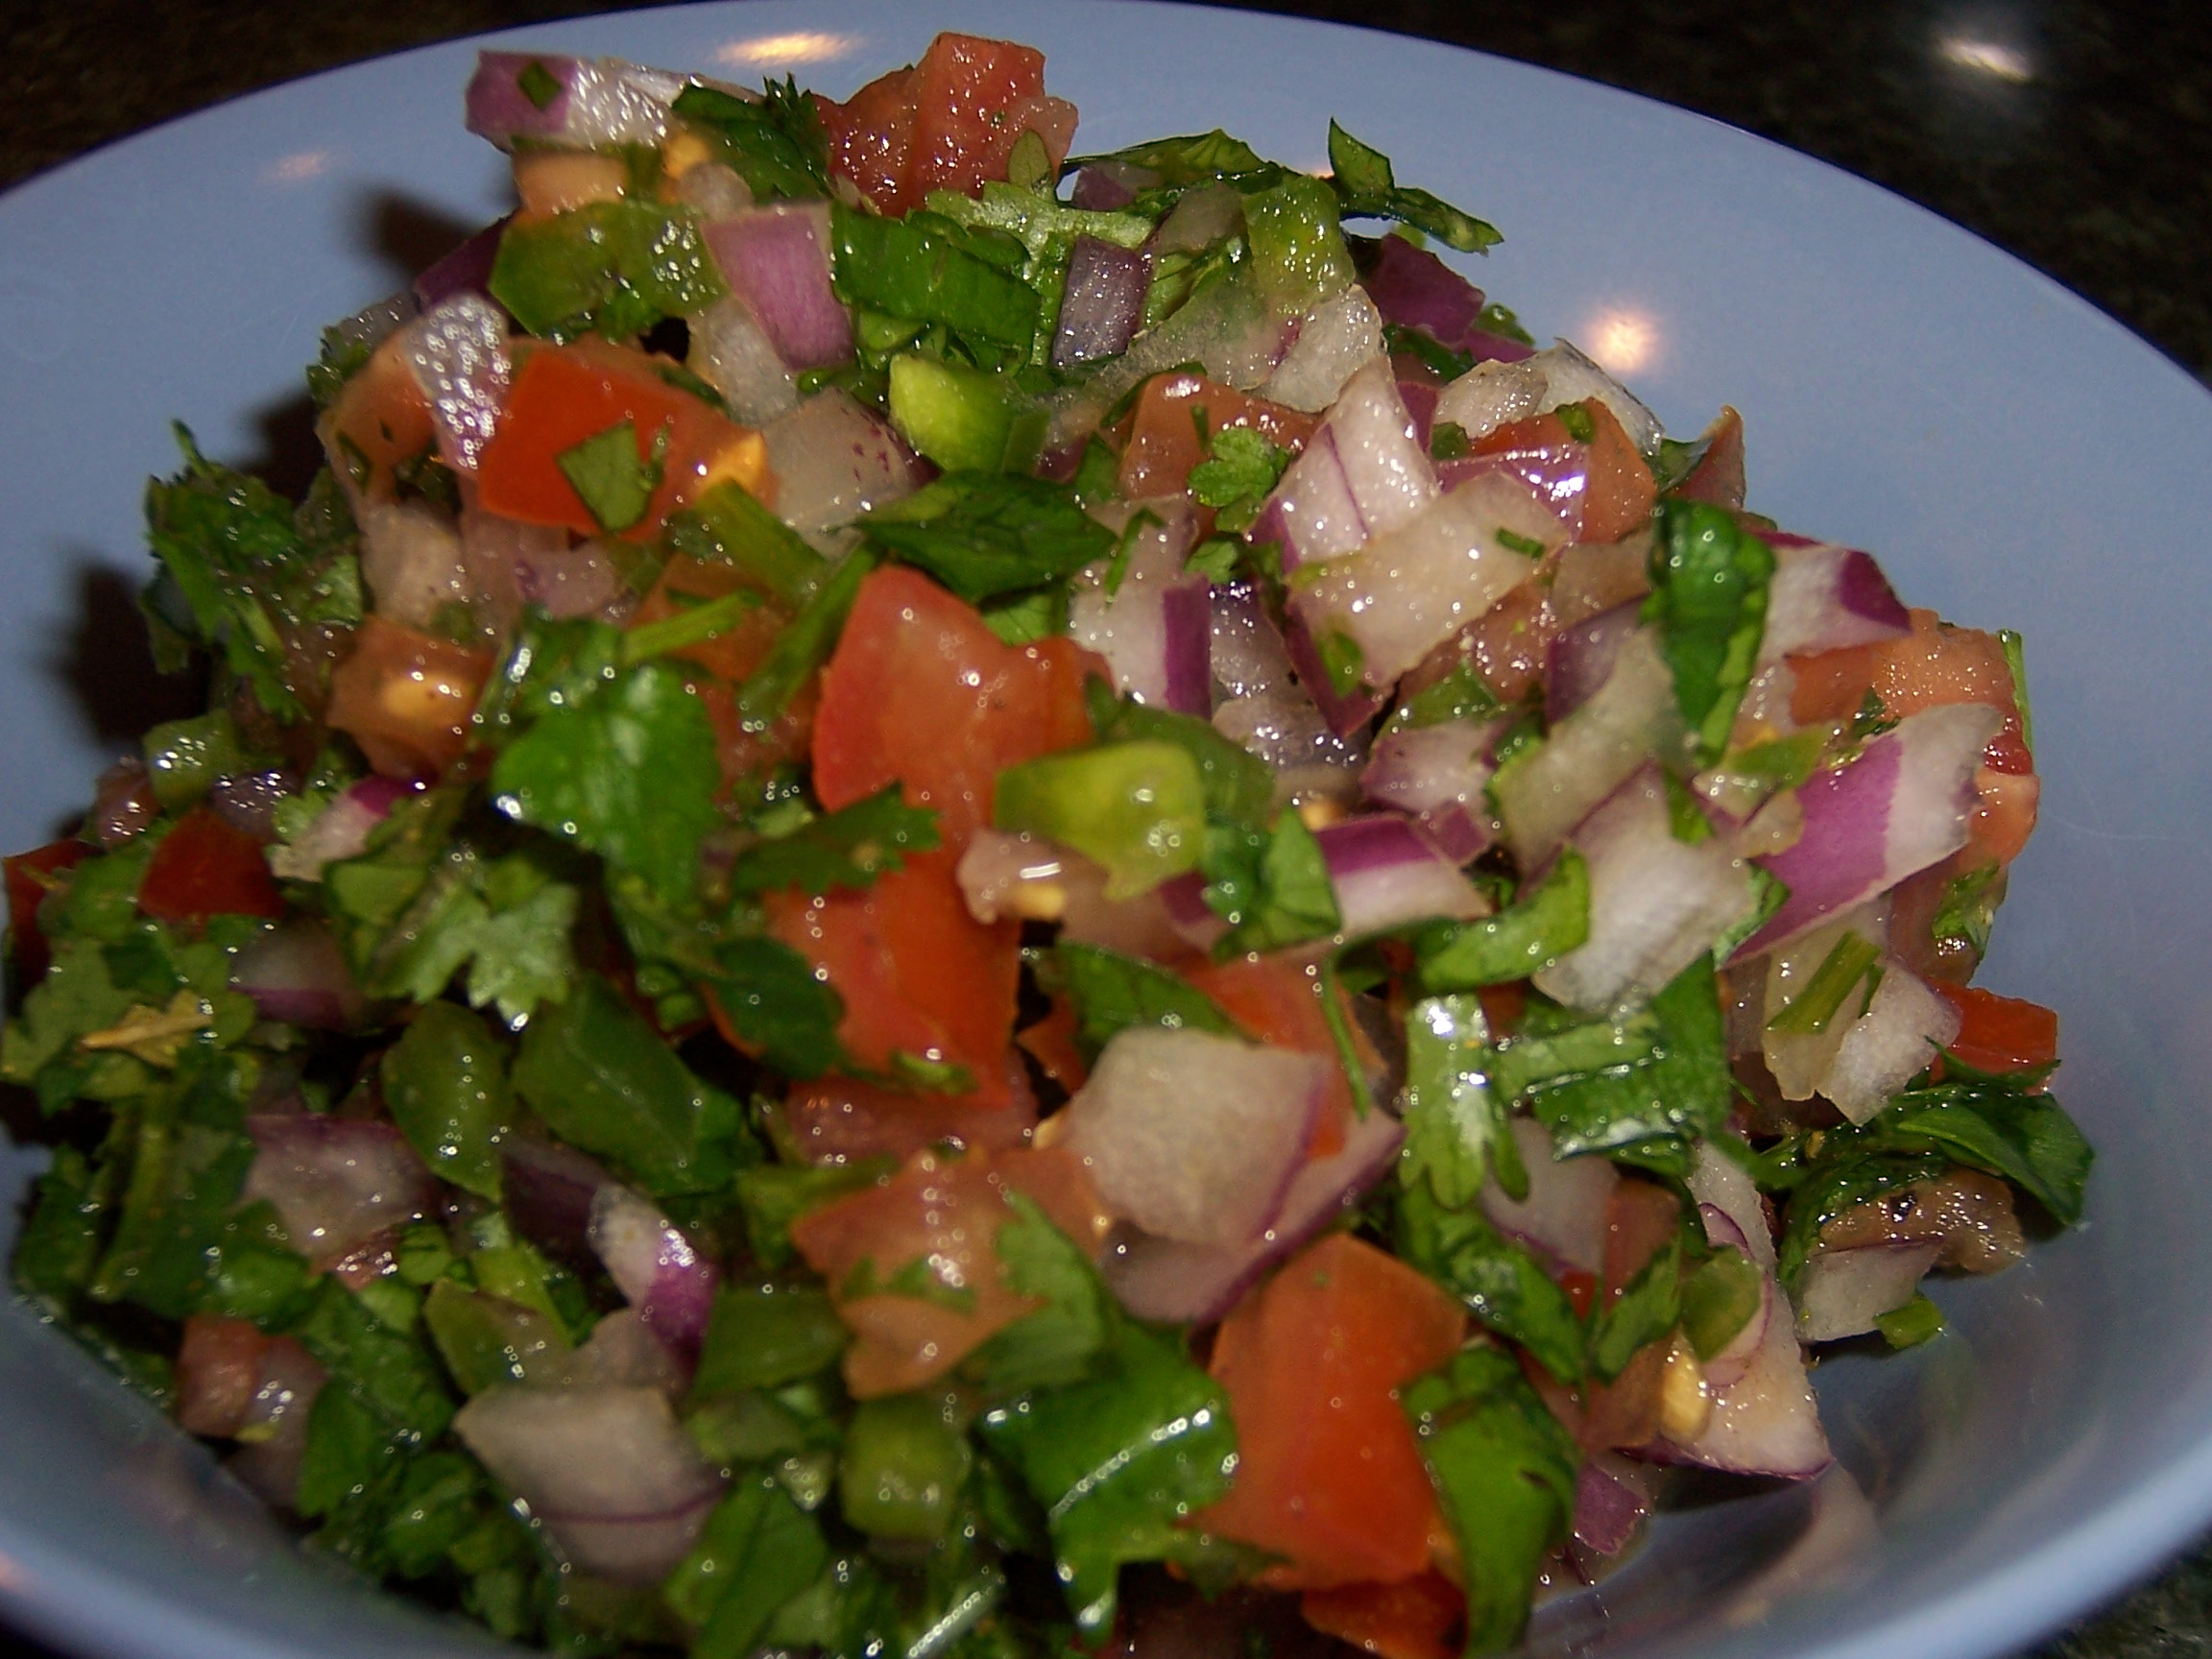 http://onestopcook.files.wordpress.com/2008/06/pico-de-gallo.jpg